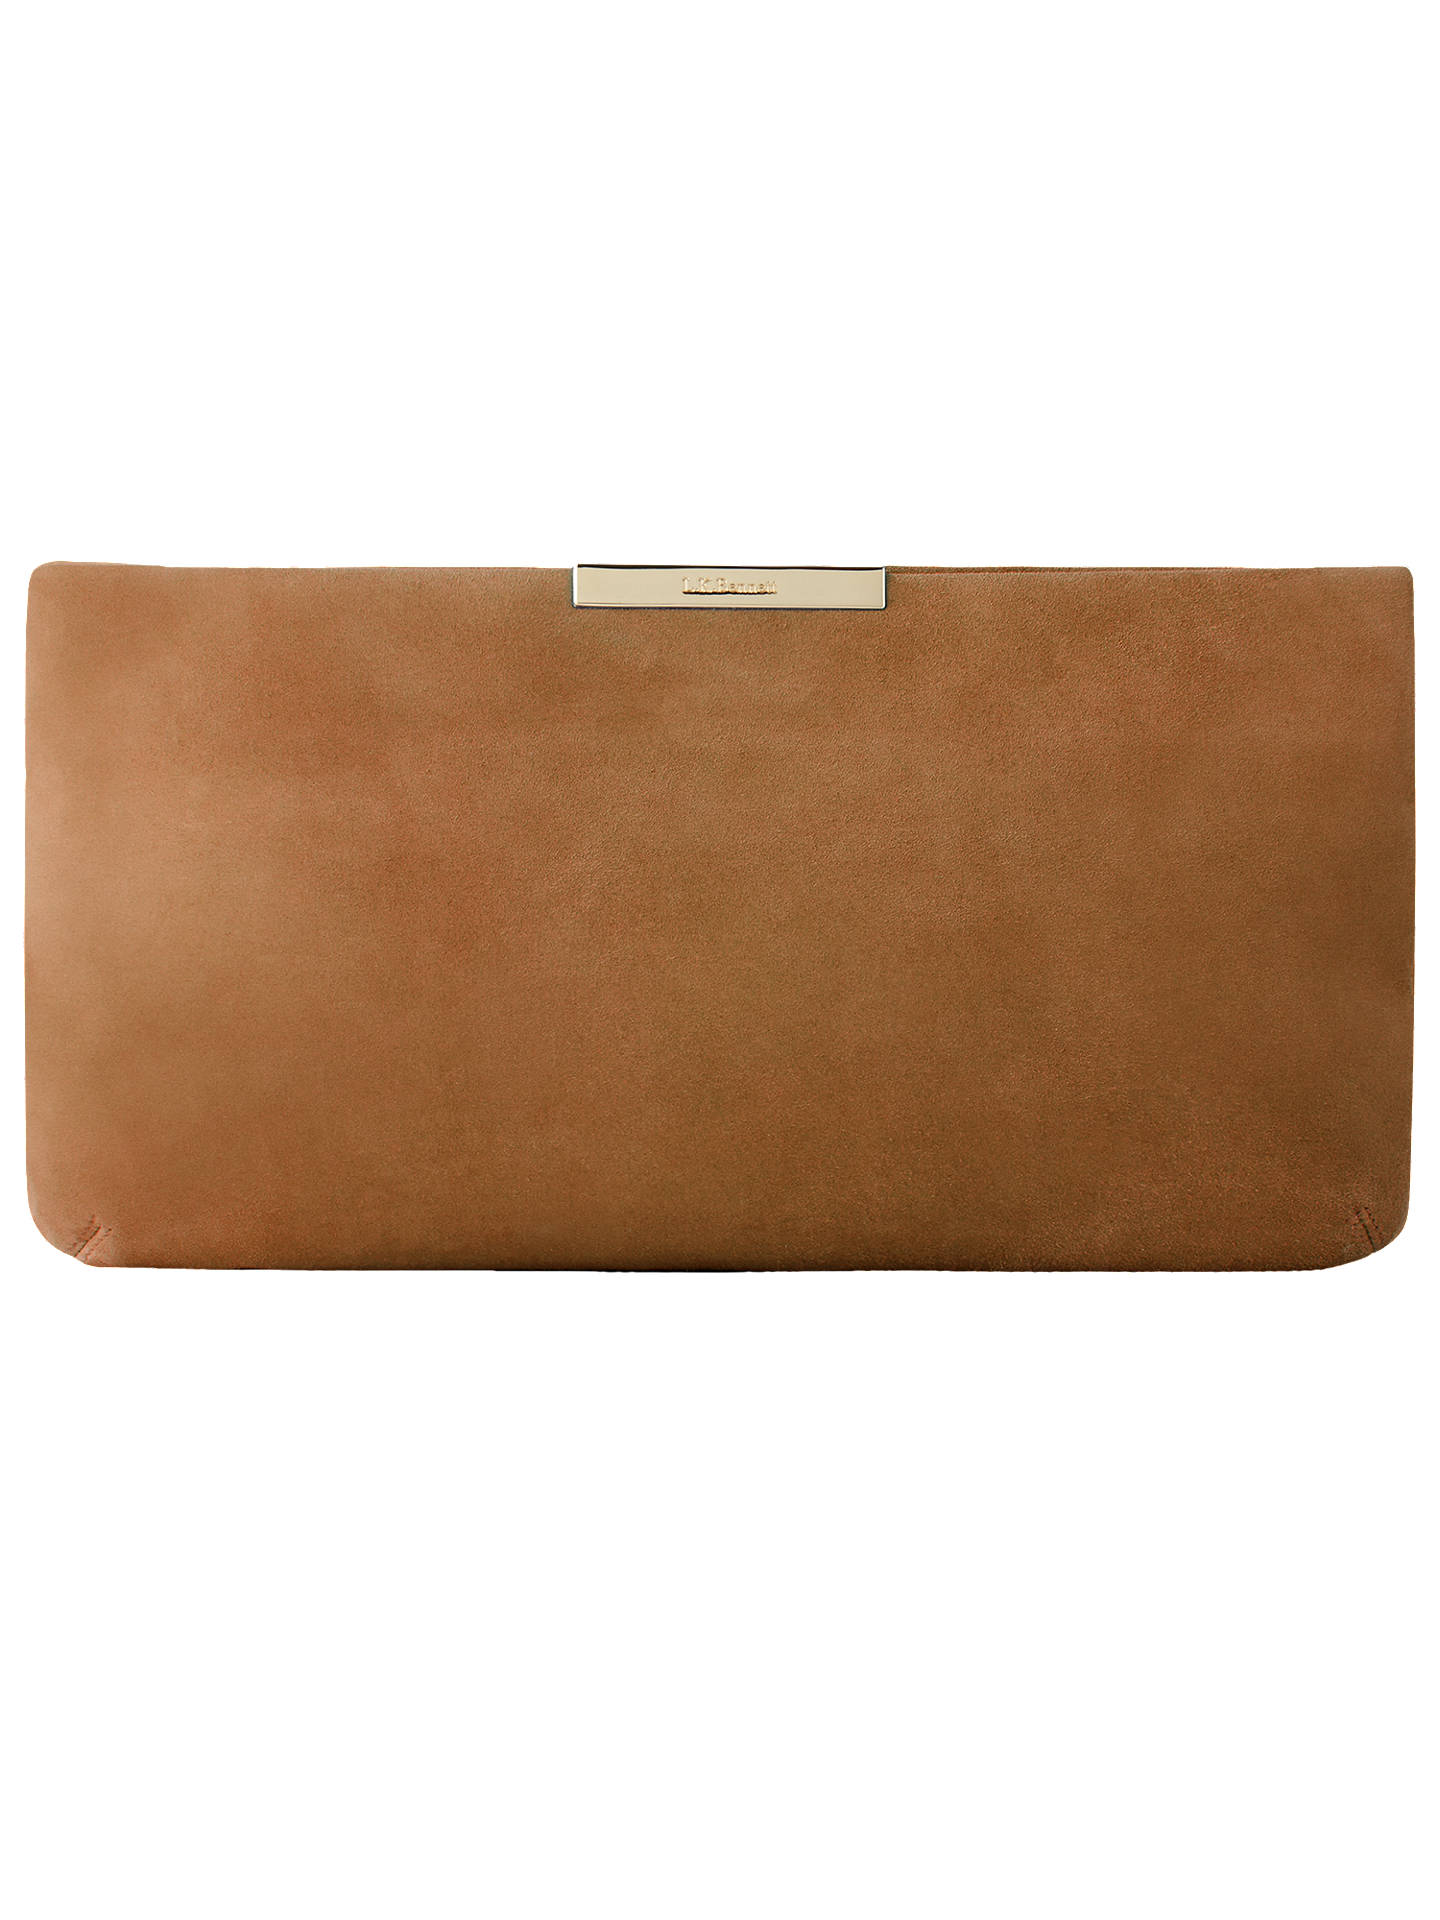 Buy L.K. Bennett Flora Leather Clutch Bag, Light Biscuit Online at johnlewis.com